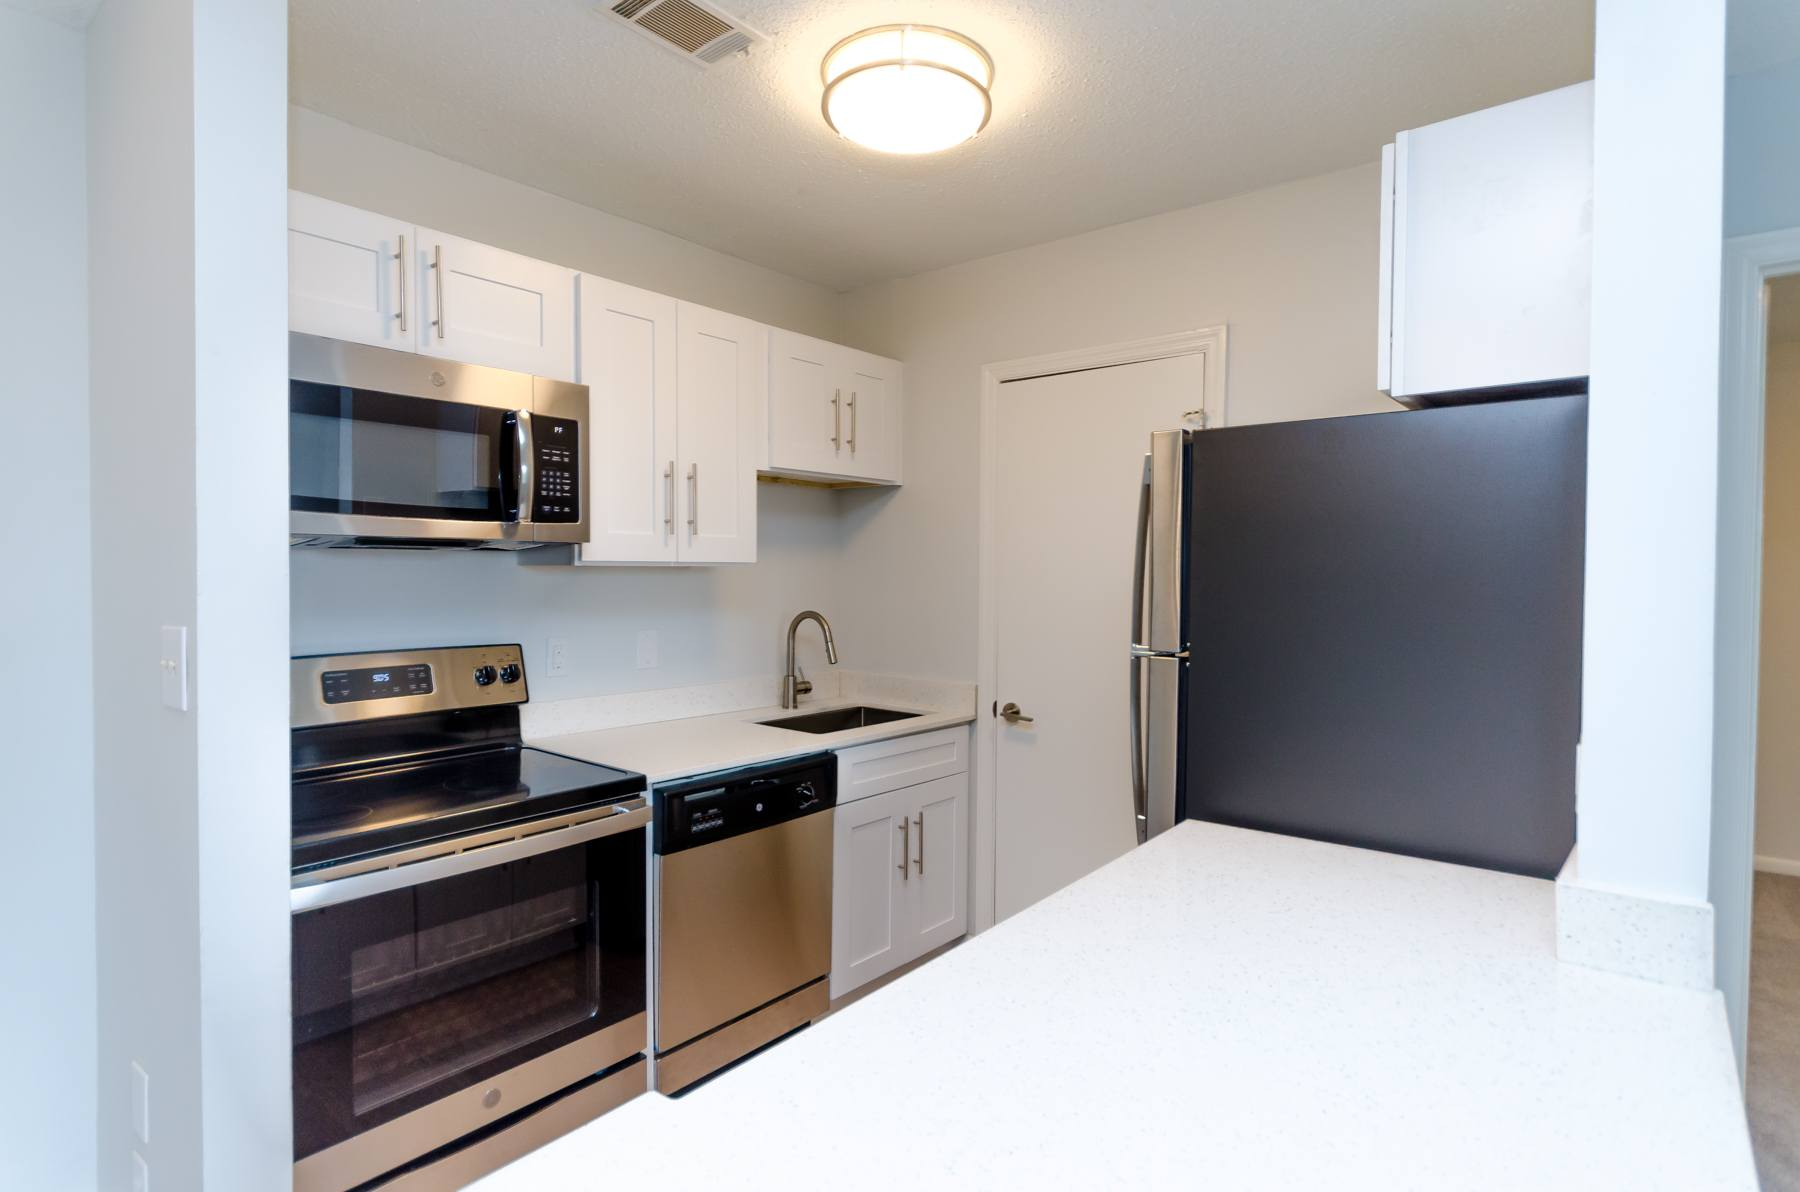 Fully Furnished Kitchen With Stainless Steel Appliances at The Downtowner, Georgia, 30901